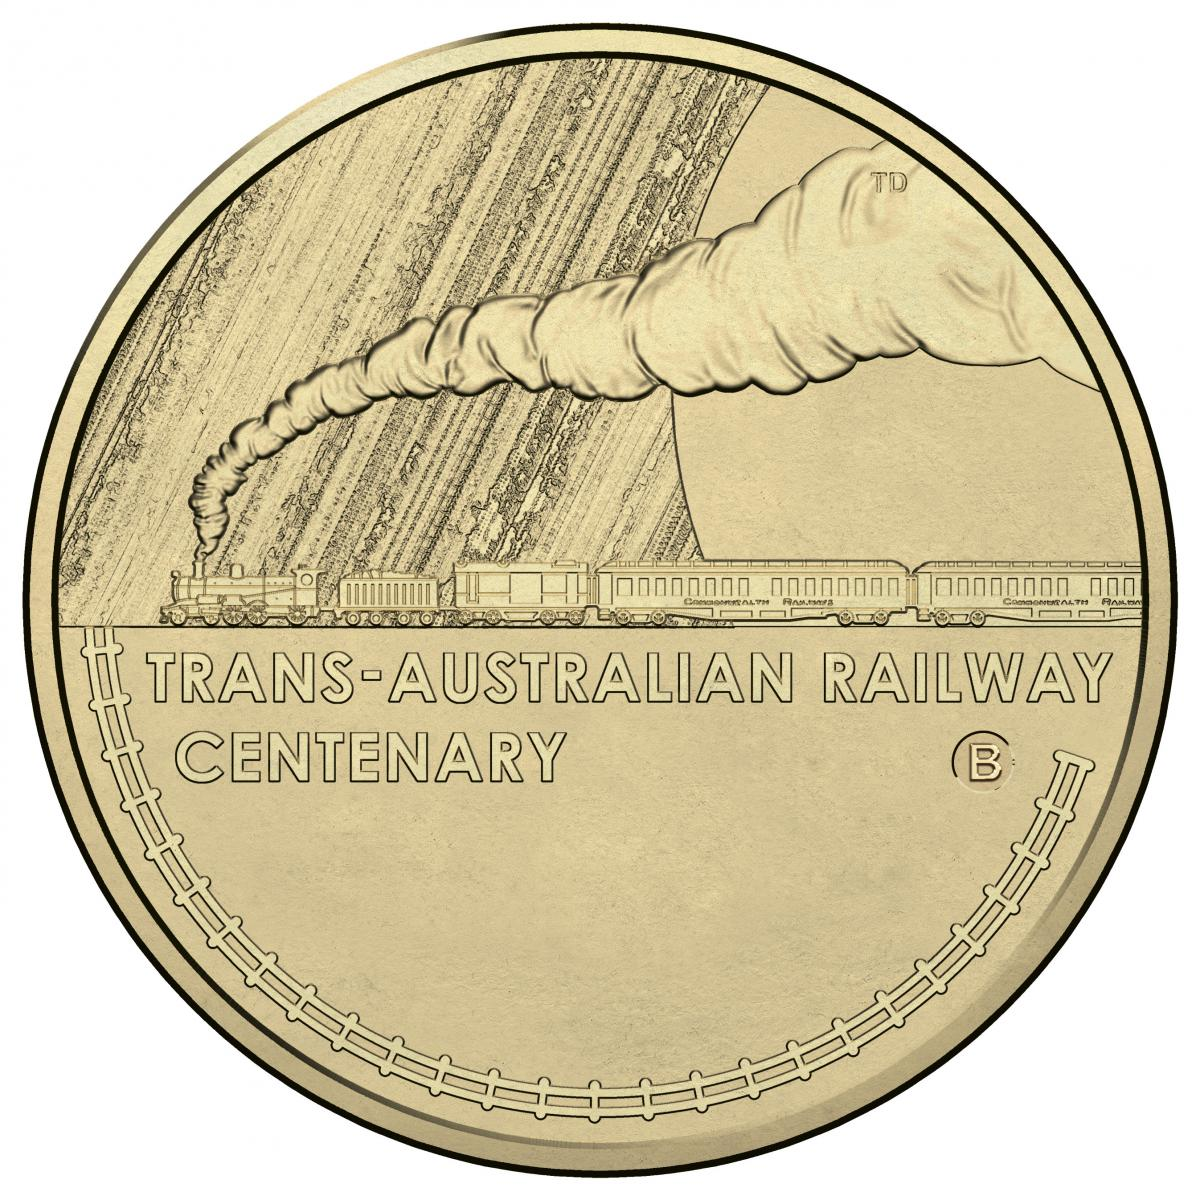 Image of the b counter stamp mintmark